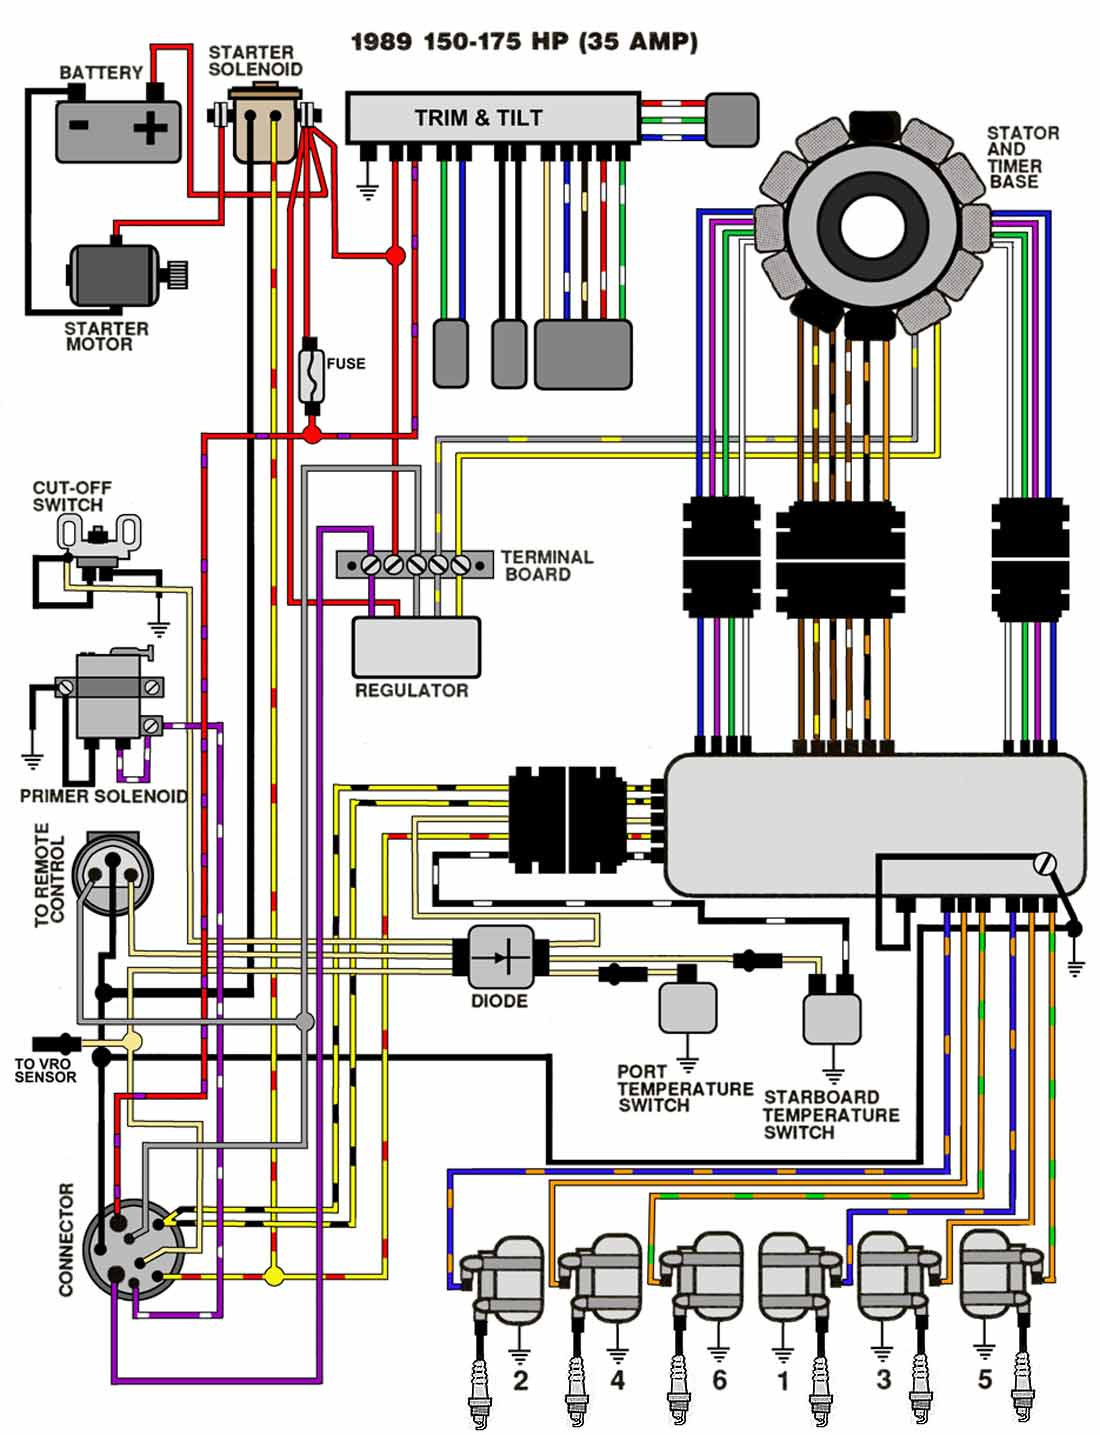 evinrude wiring diagram wiring diagrams and schematics have a 1981 johnson outboard power trim and tilt when 50 evinrude wiring diagram